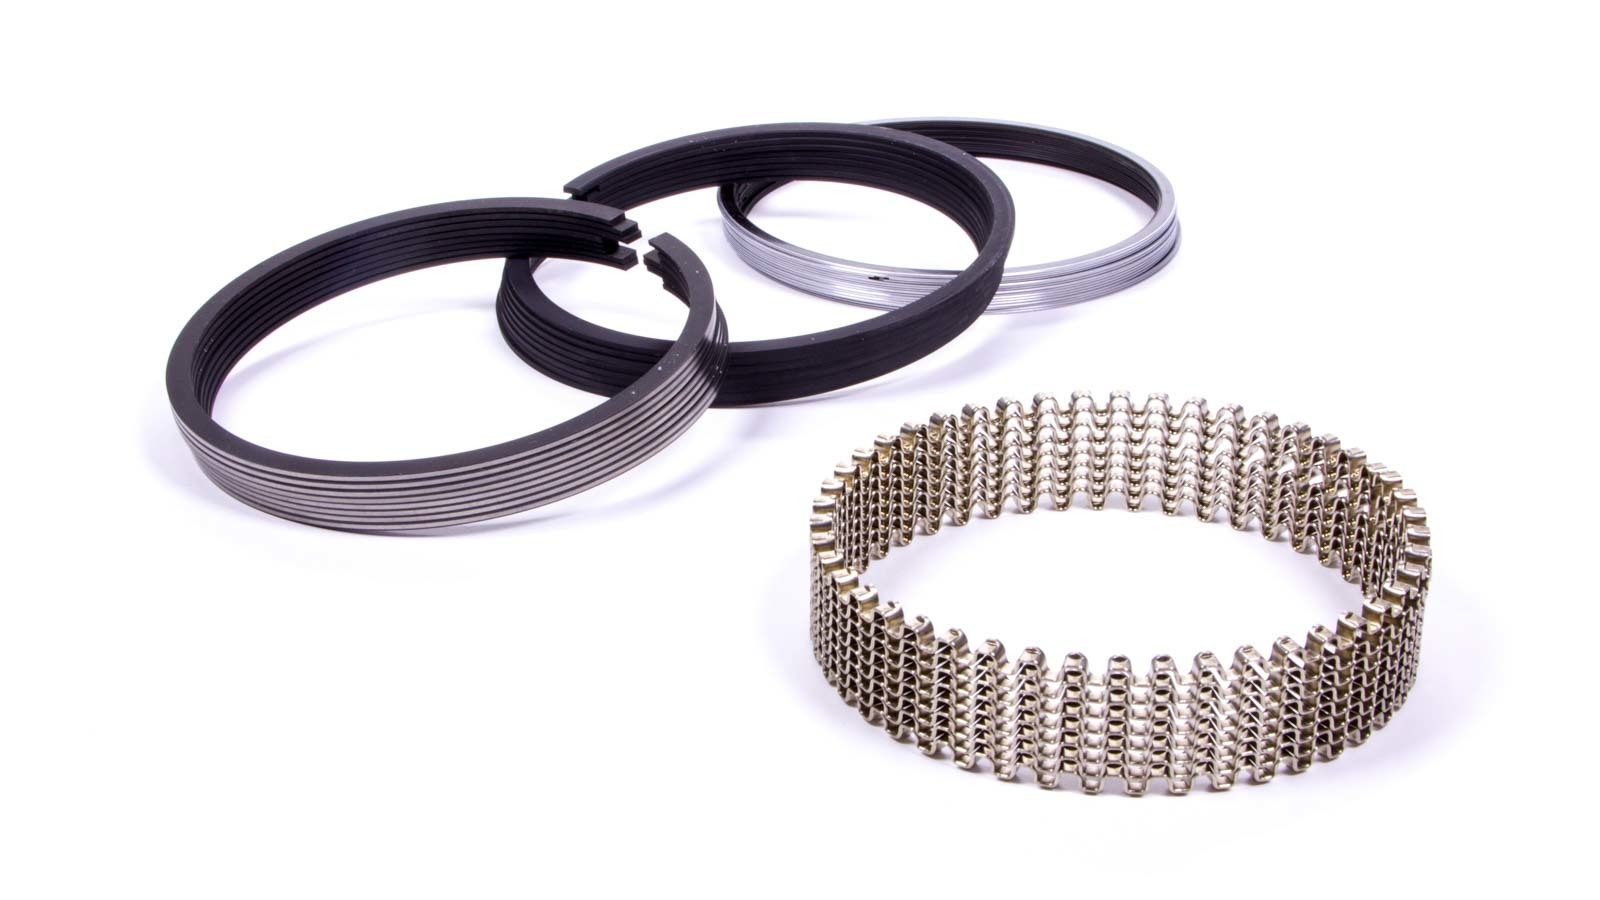 JE Pistons S100S8-4030-5 Piston Rings, Sportsman Series, 4.030 in Bore, File Fit, 1/16 x 1/16 x 3/16 in Thick, Standard Tension, Plasma Moly, 8 Cylinder, Kit